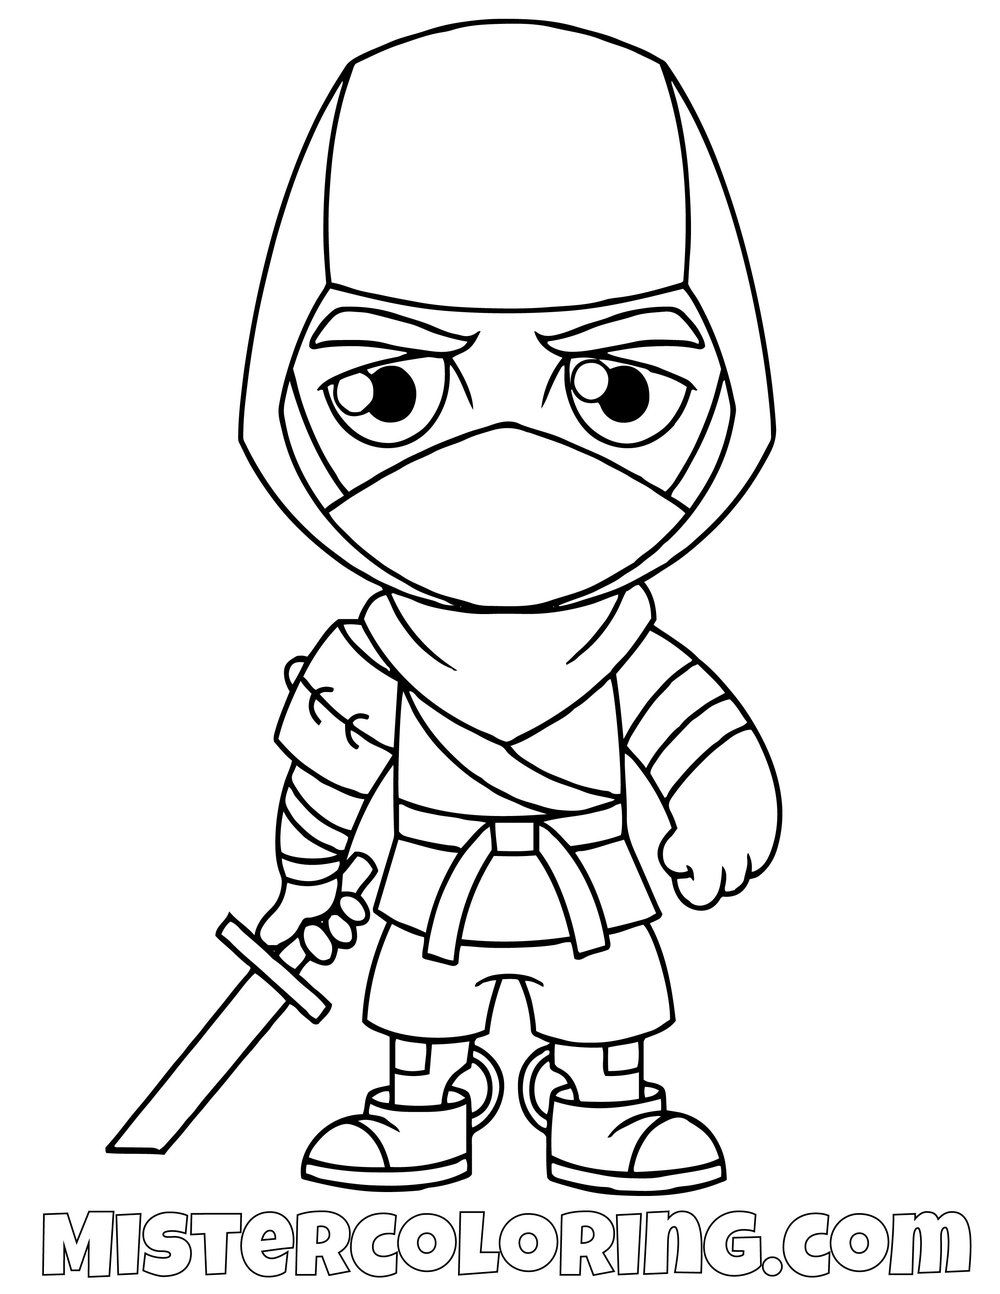 Free Ninja Chibi Fortnite Coloring Page For Kids In 2019